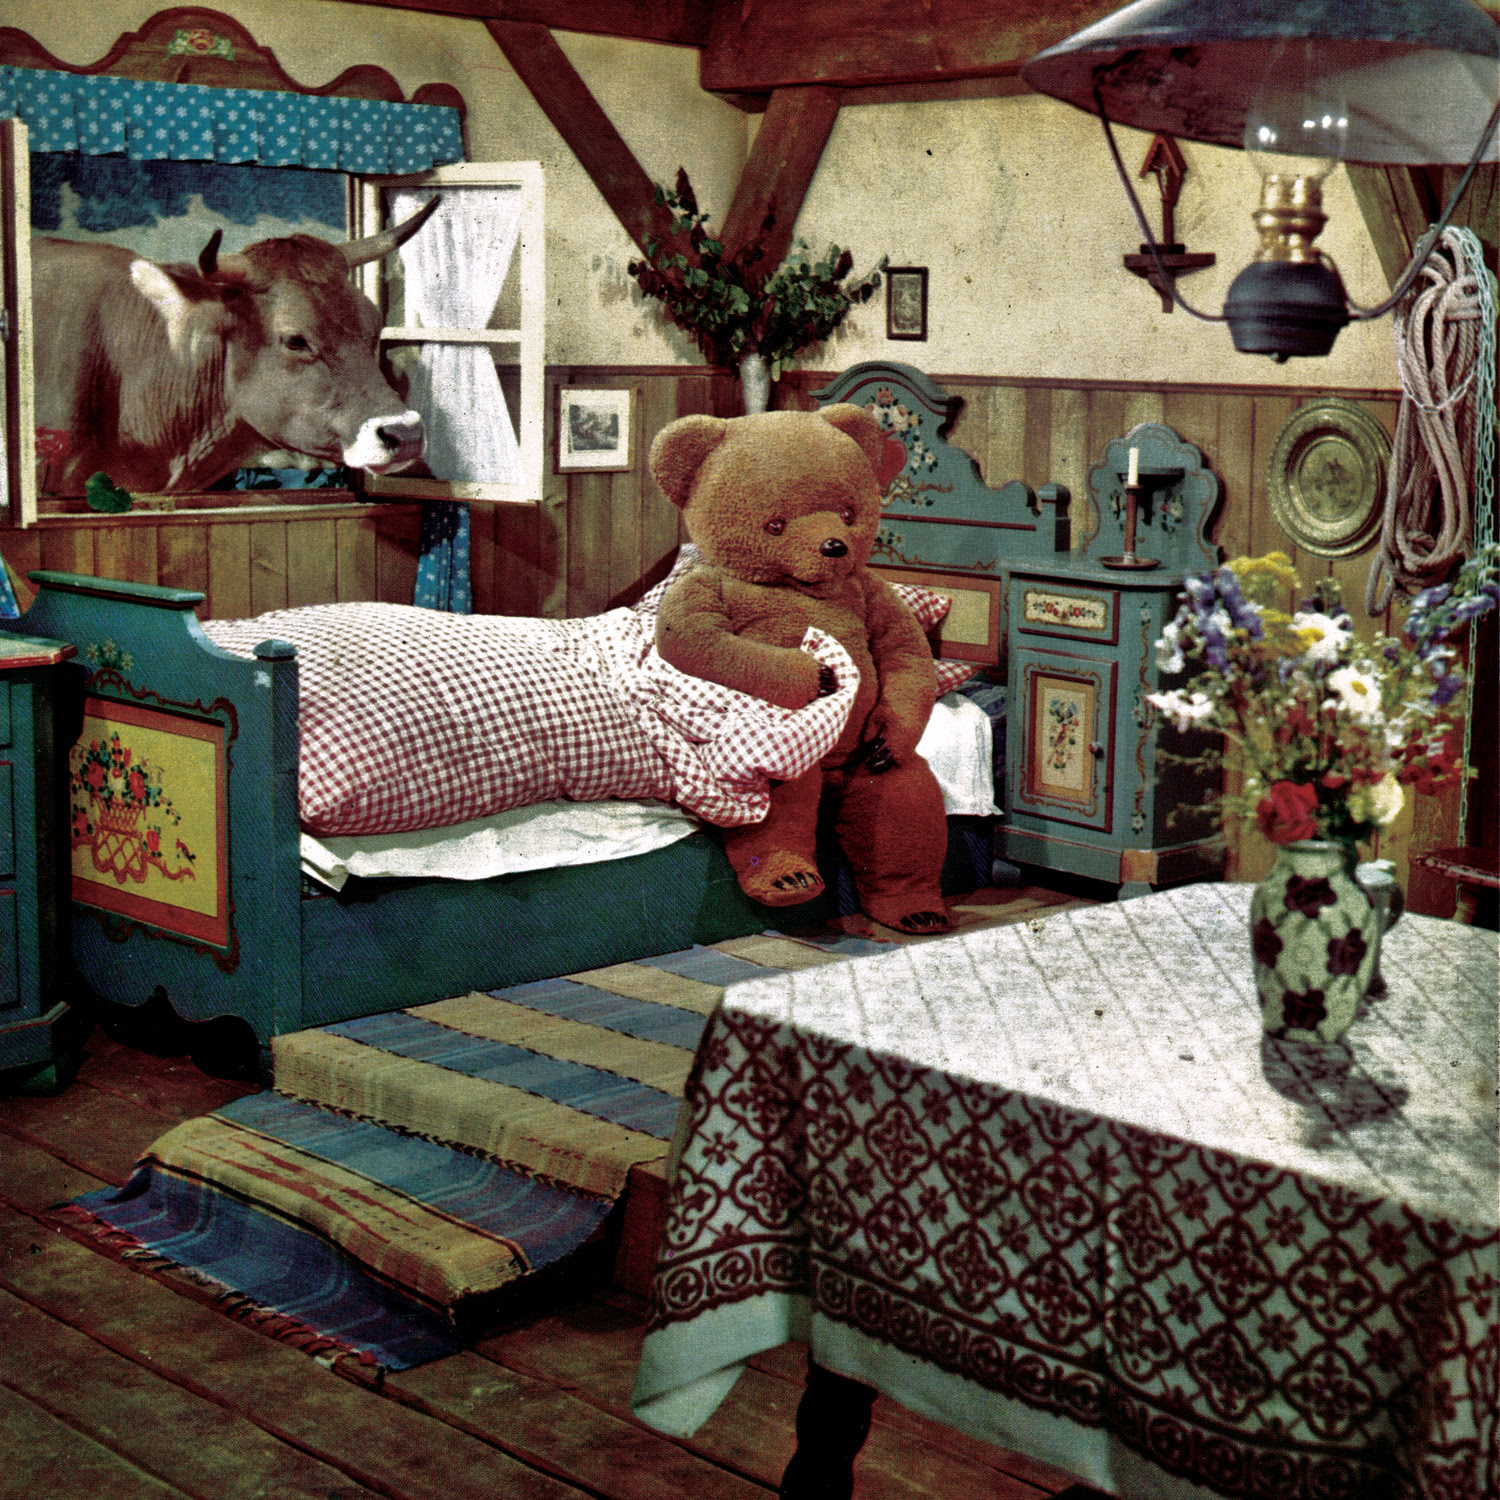 """John Congleton and the Nighty Nite announce debut LP 'Until the Horror Goes', Shares first single """"Until It Goes"""". The album comes out April 1"""